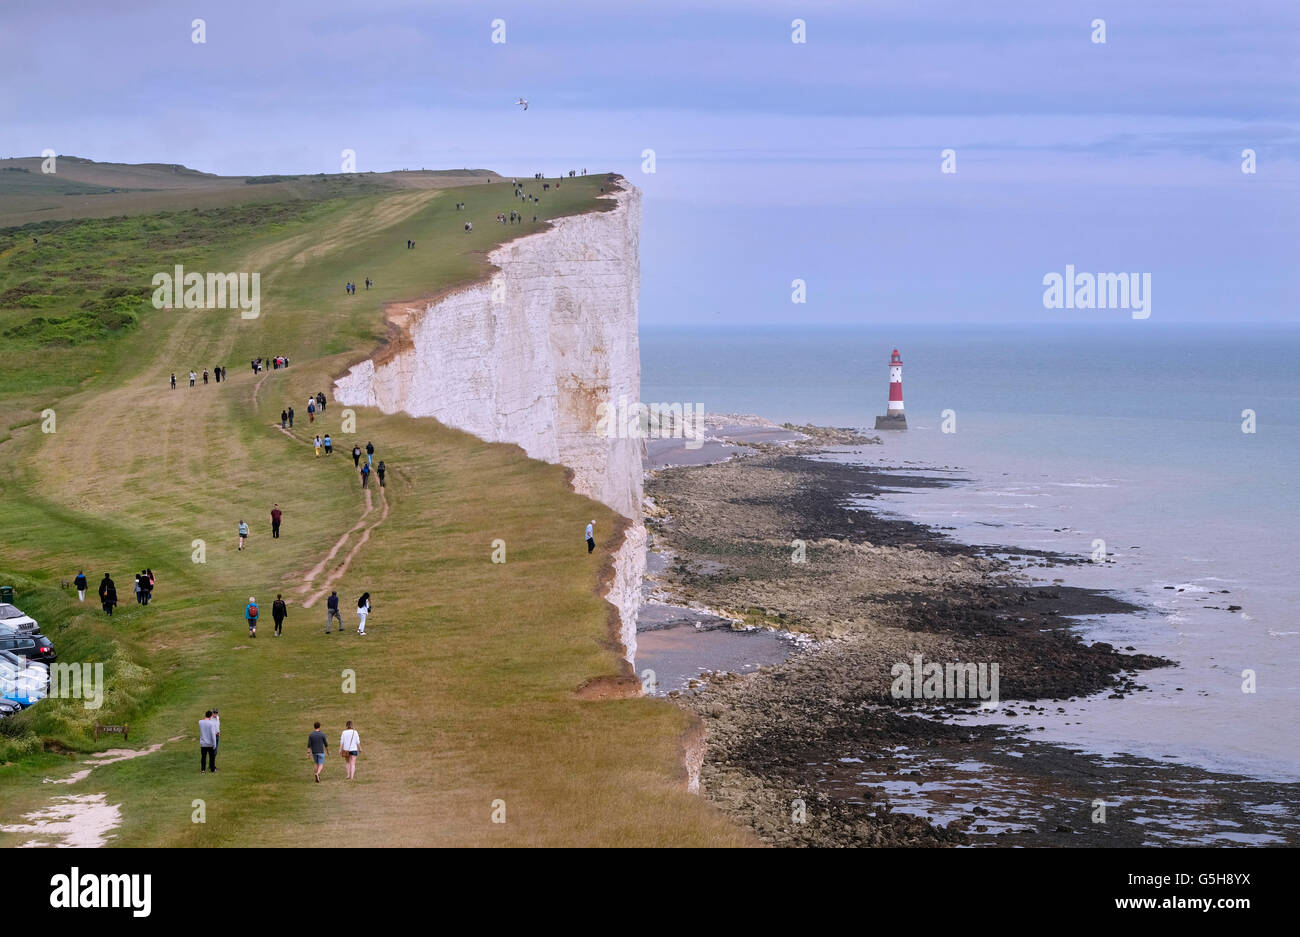 People on the South Downs Way footpath near Beachy Head. Eastbourne, Sussex, England. - Stock Image